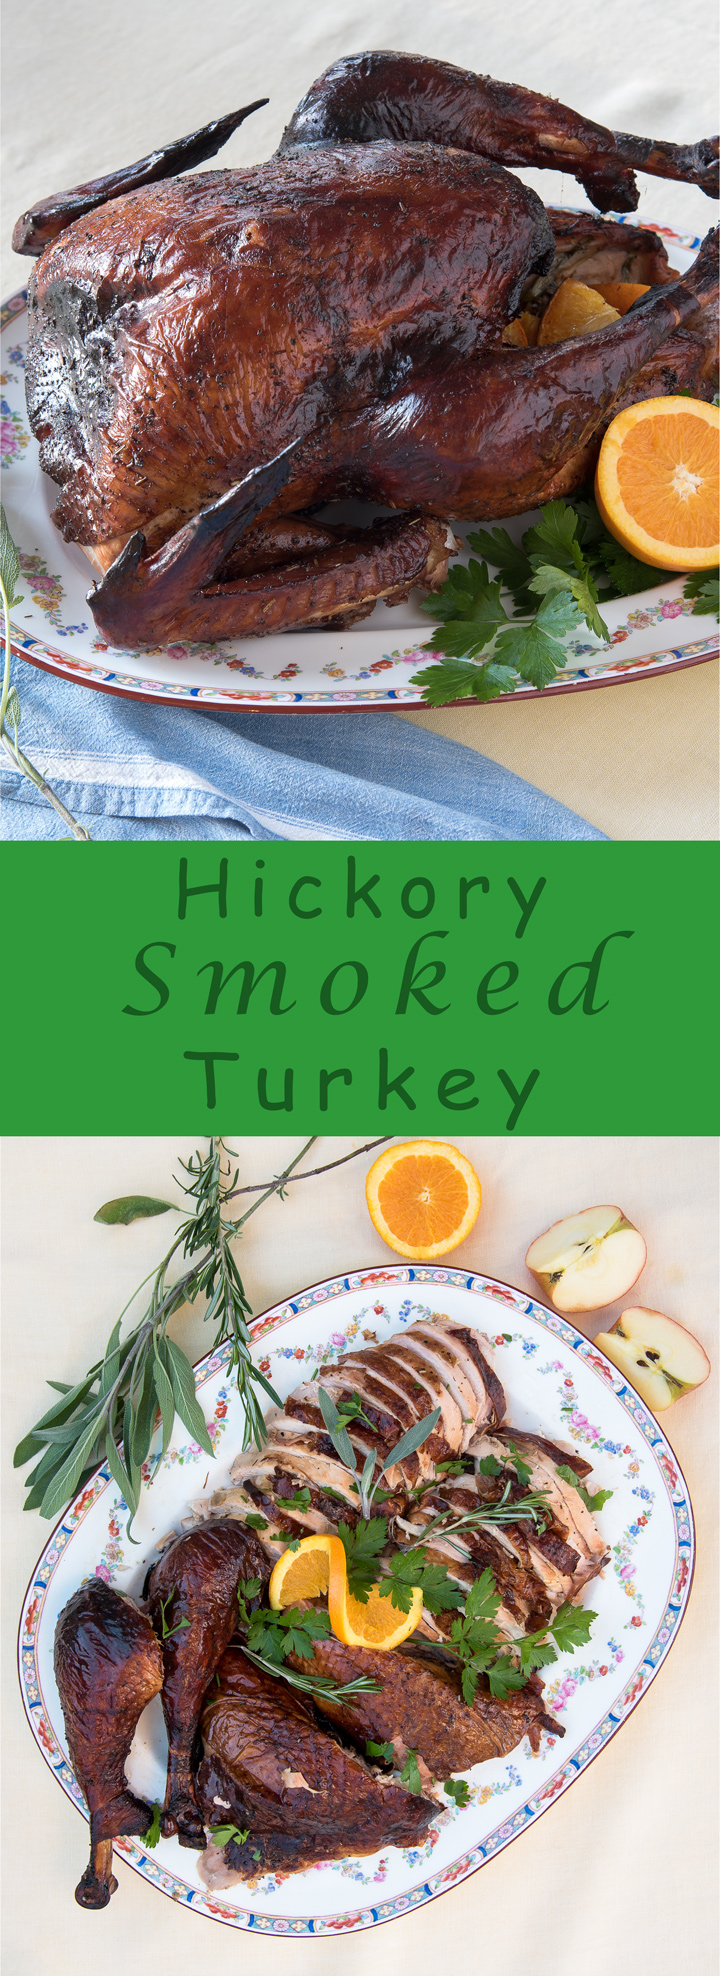 Hickory Smoked Turkey recipe. The ultimate turkey recipe. How to brine, grill and smoke a turkey using a charcoal grill. Apple cider brine recipe included.